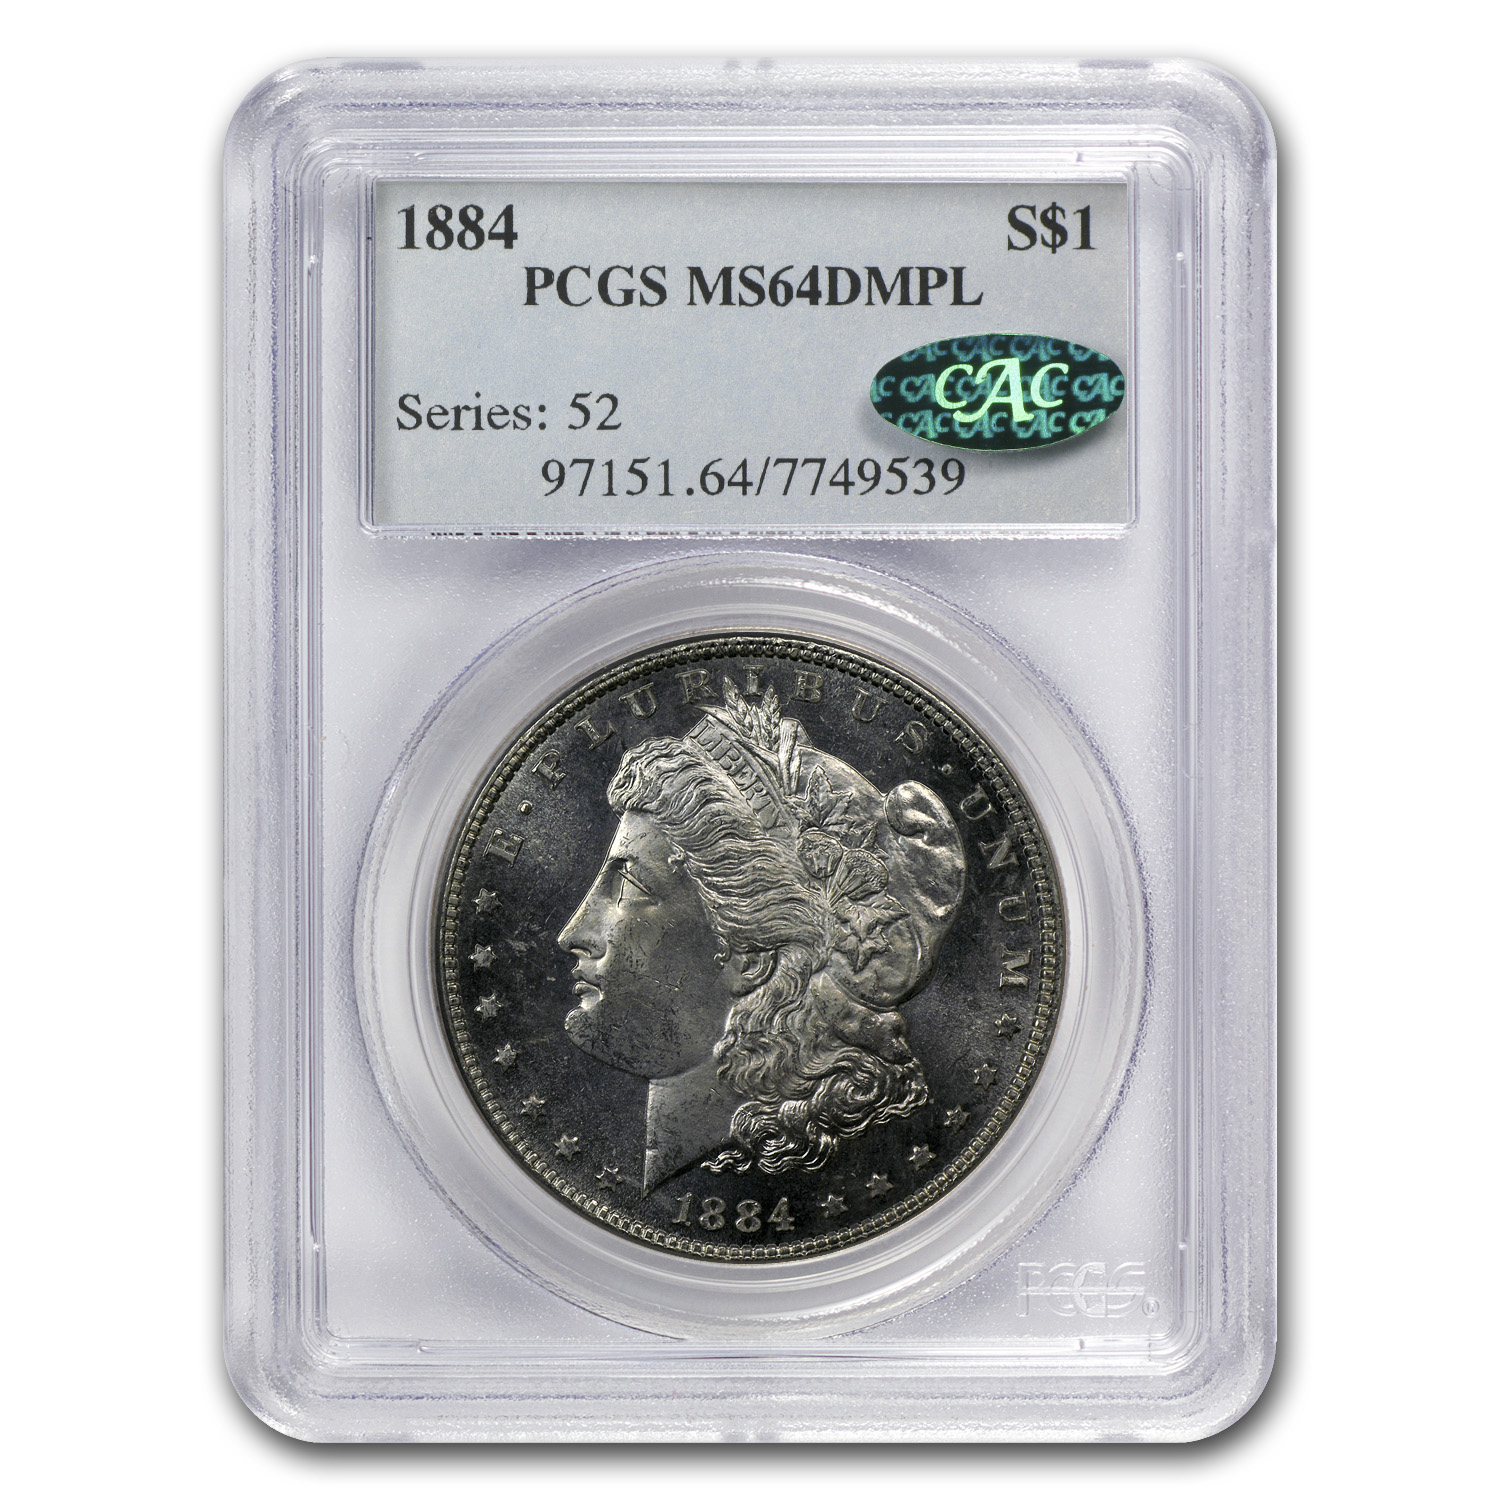 1884 Morgan Dollar - MS-64 DMPL Deep Mirror Proof Like PCGS - CAC